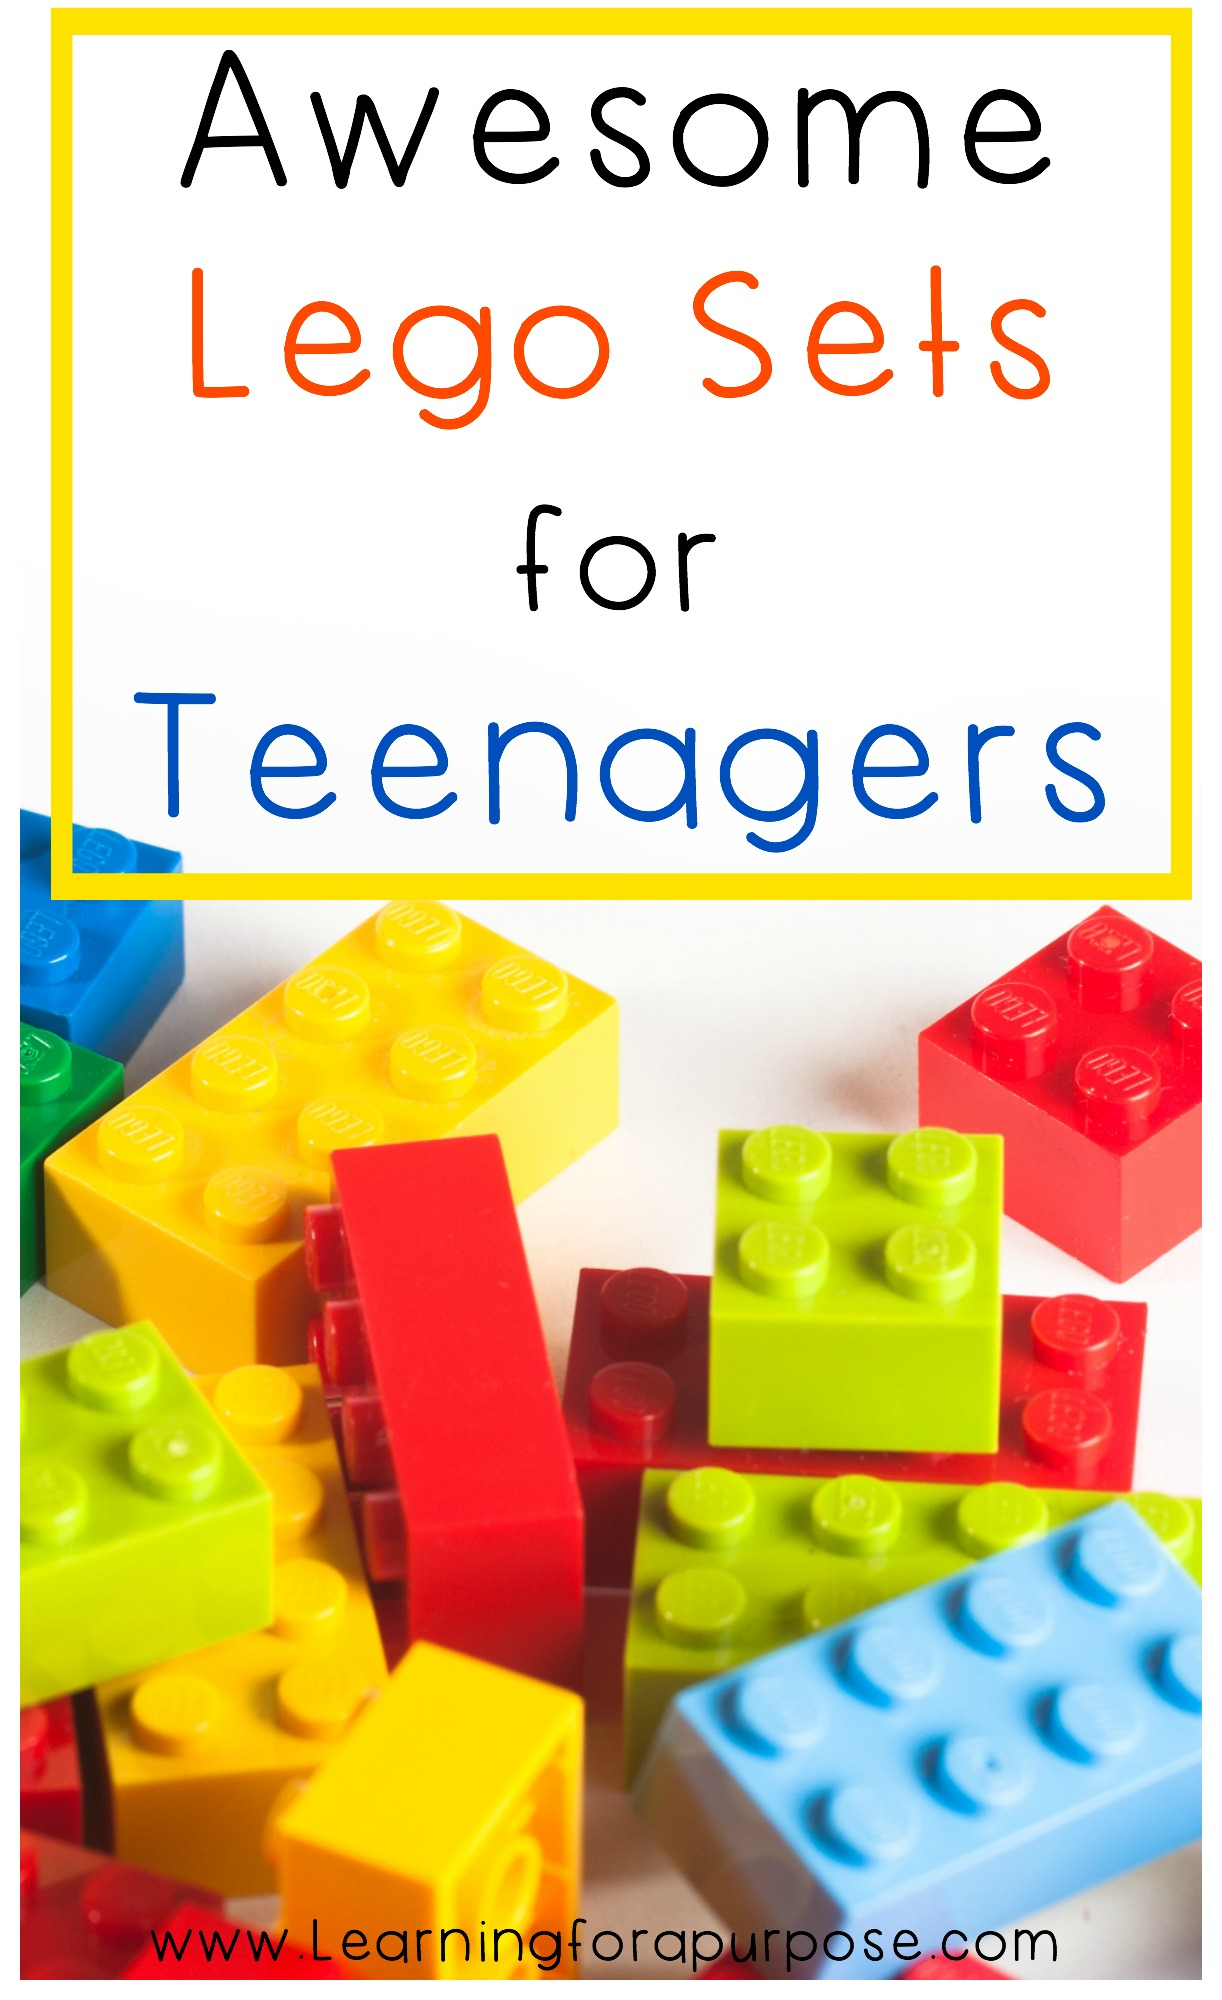 Lego Sets for Teenagers